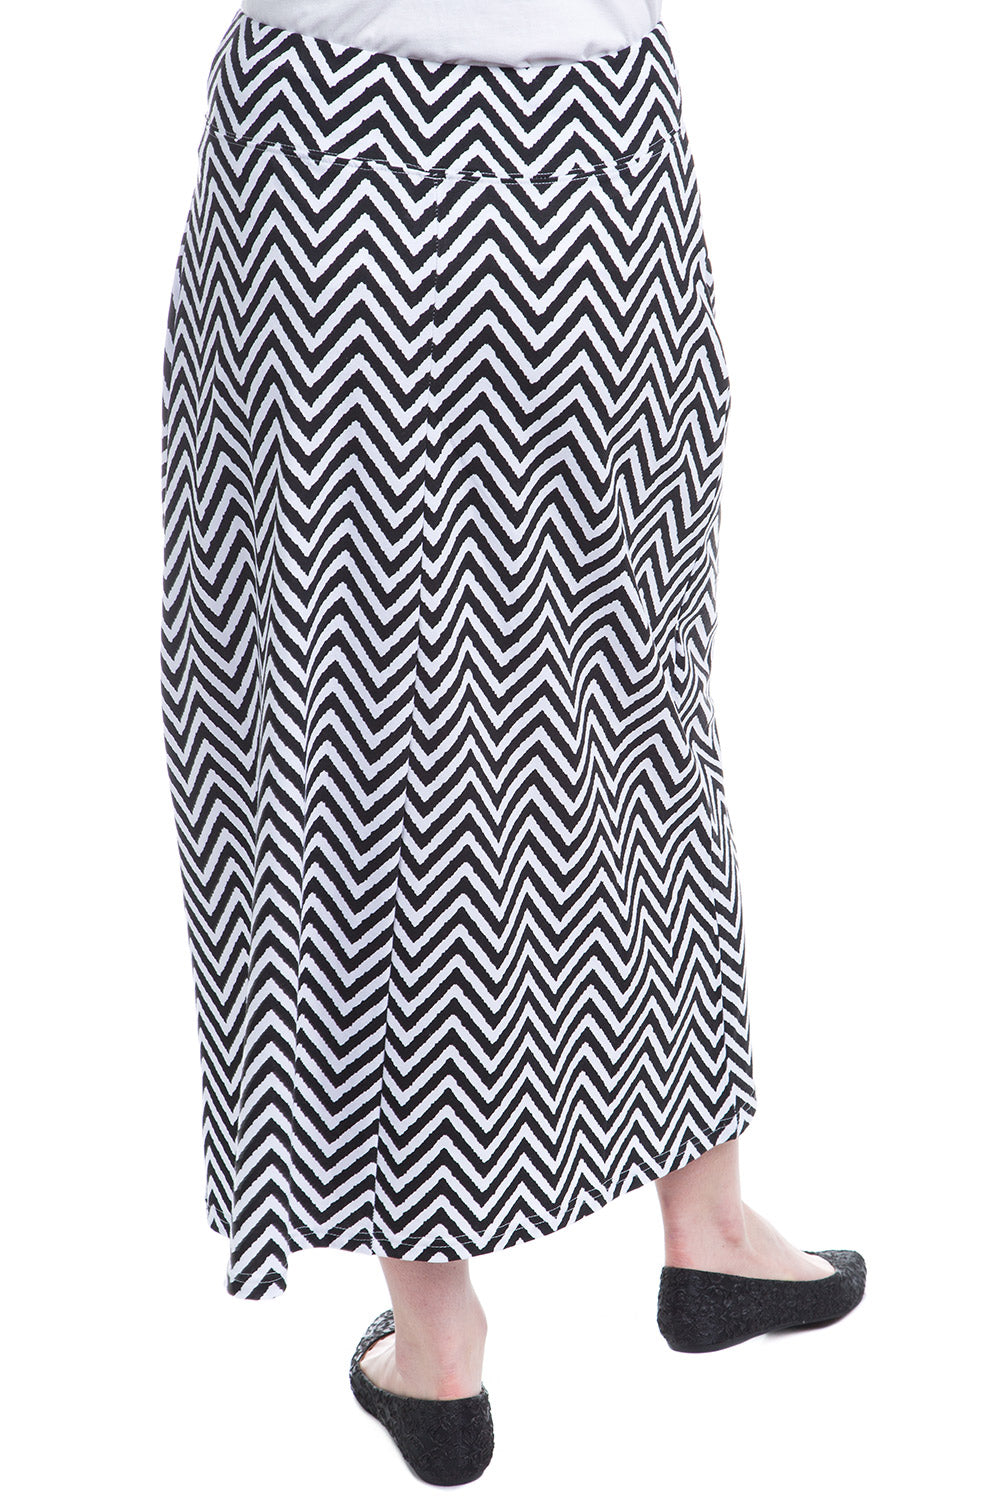 Type 4 Venus Skirt In Black And White